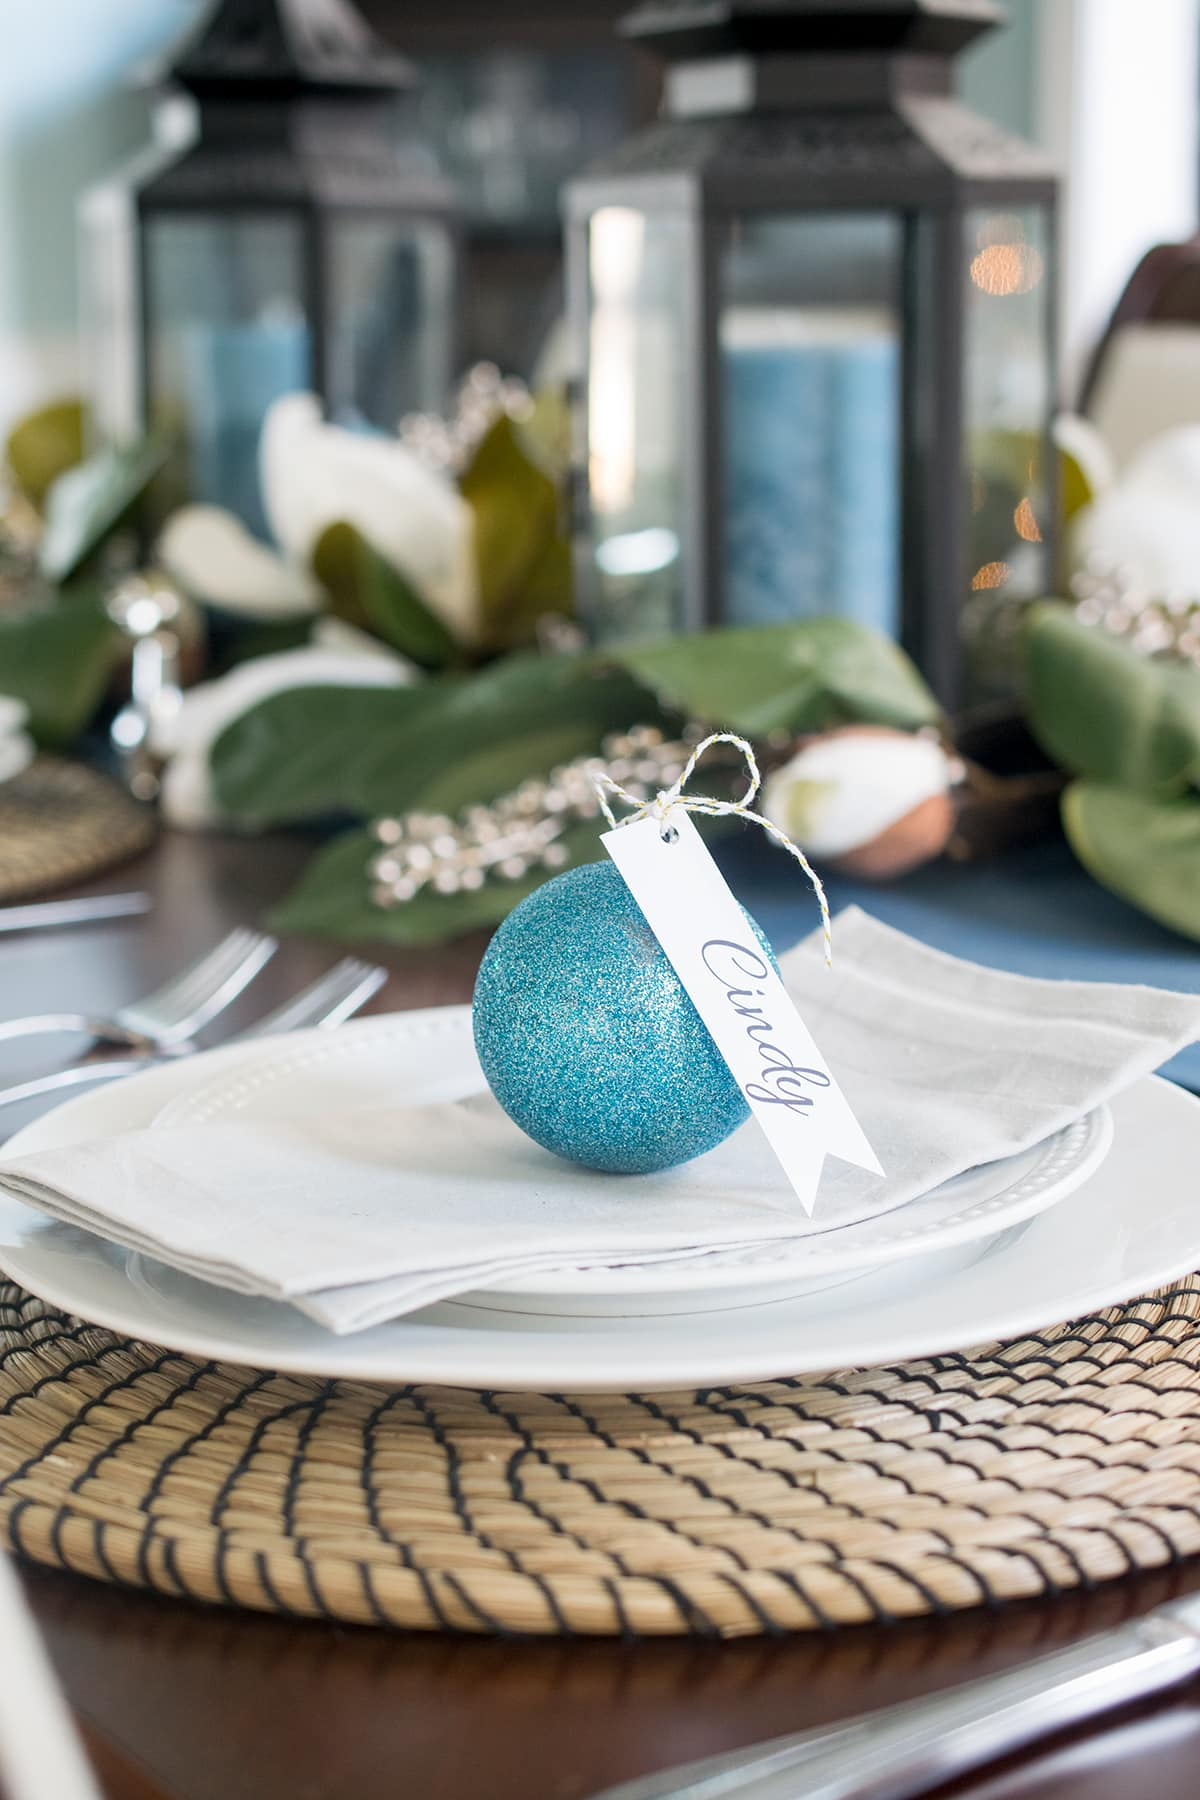 Personalized table setting with sparkly blue ornaments with name cards on white dinnerware and neutral mat